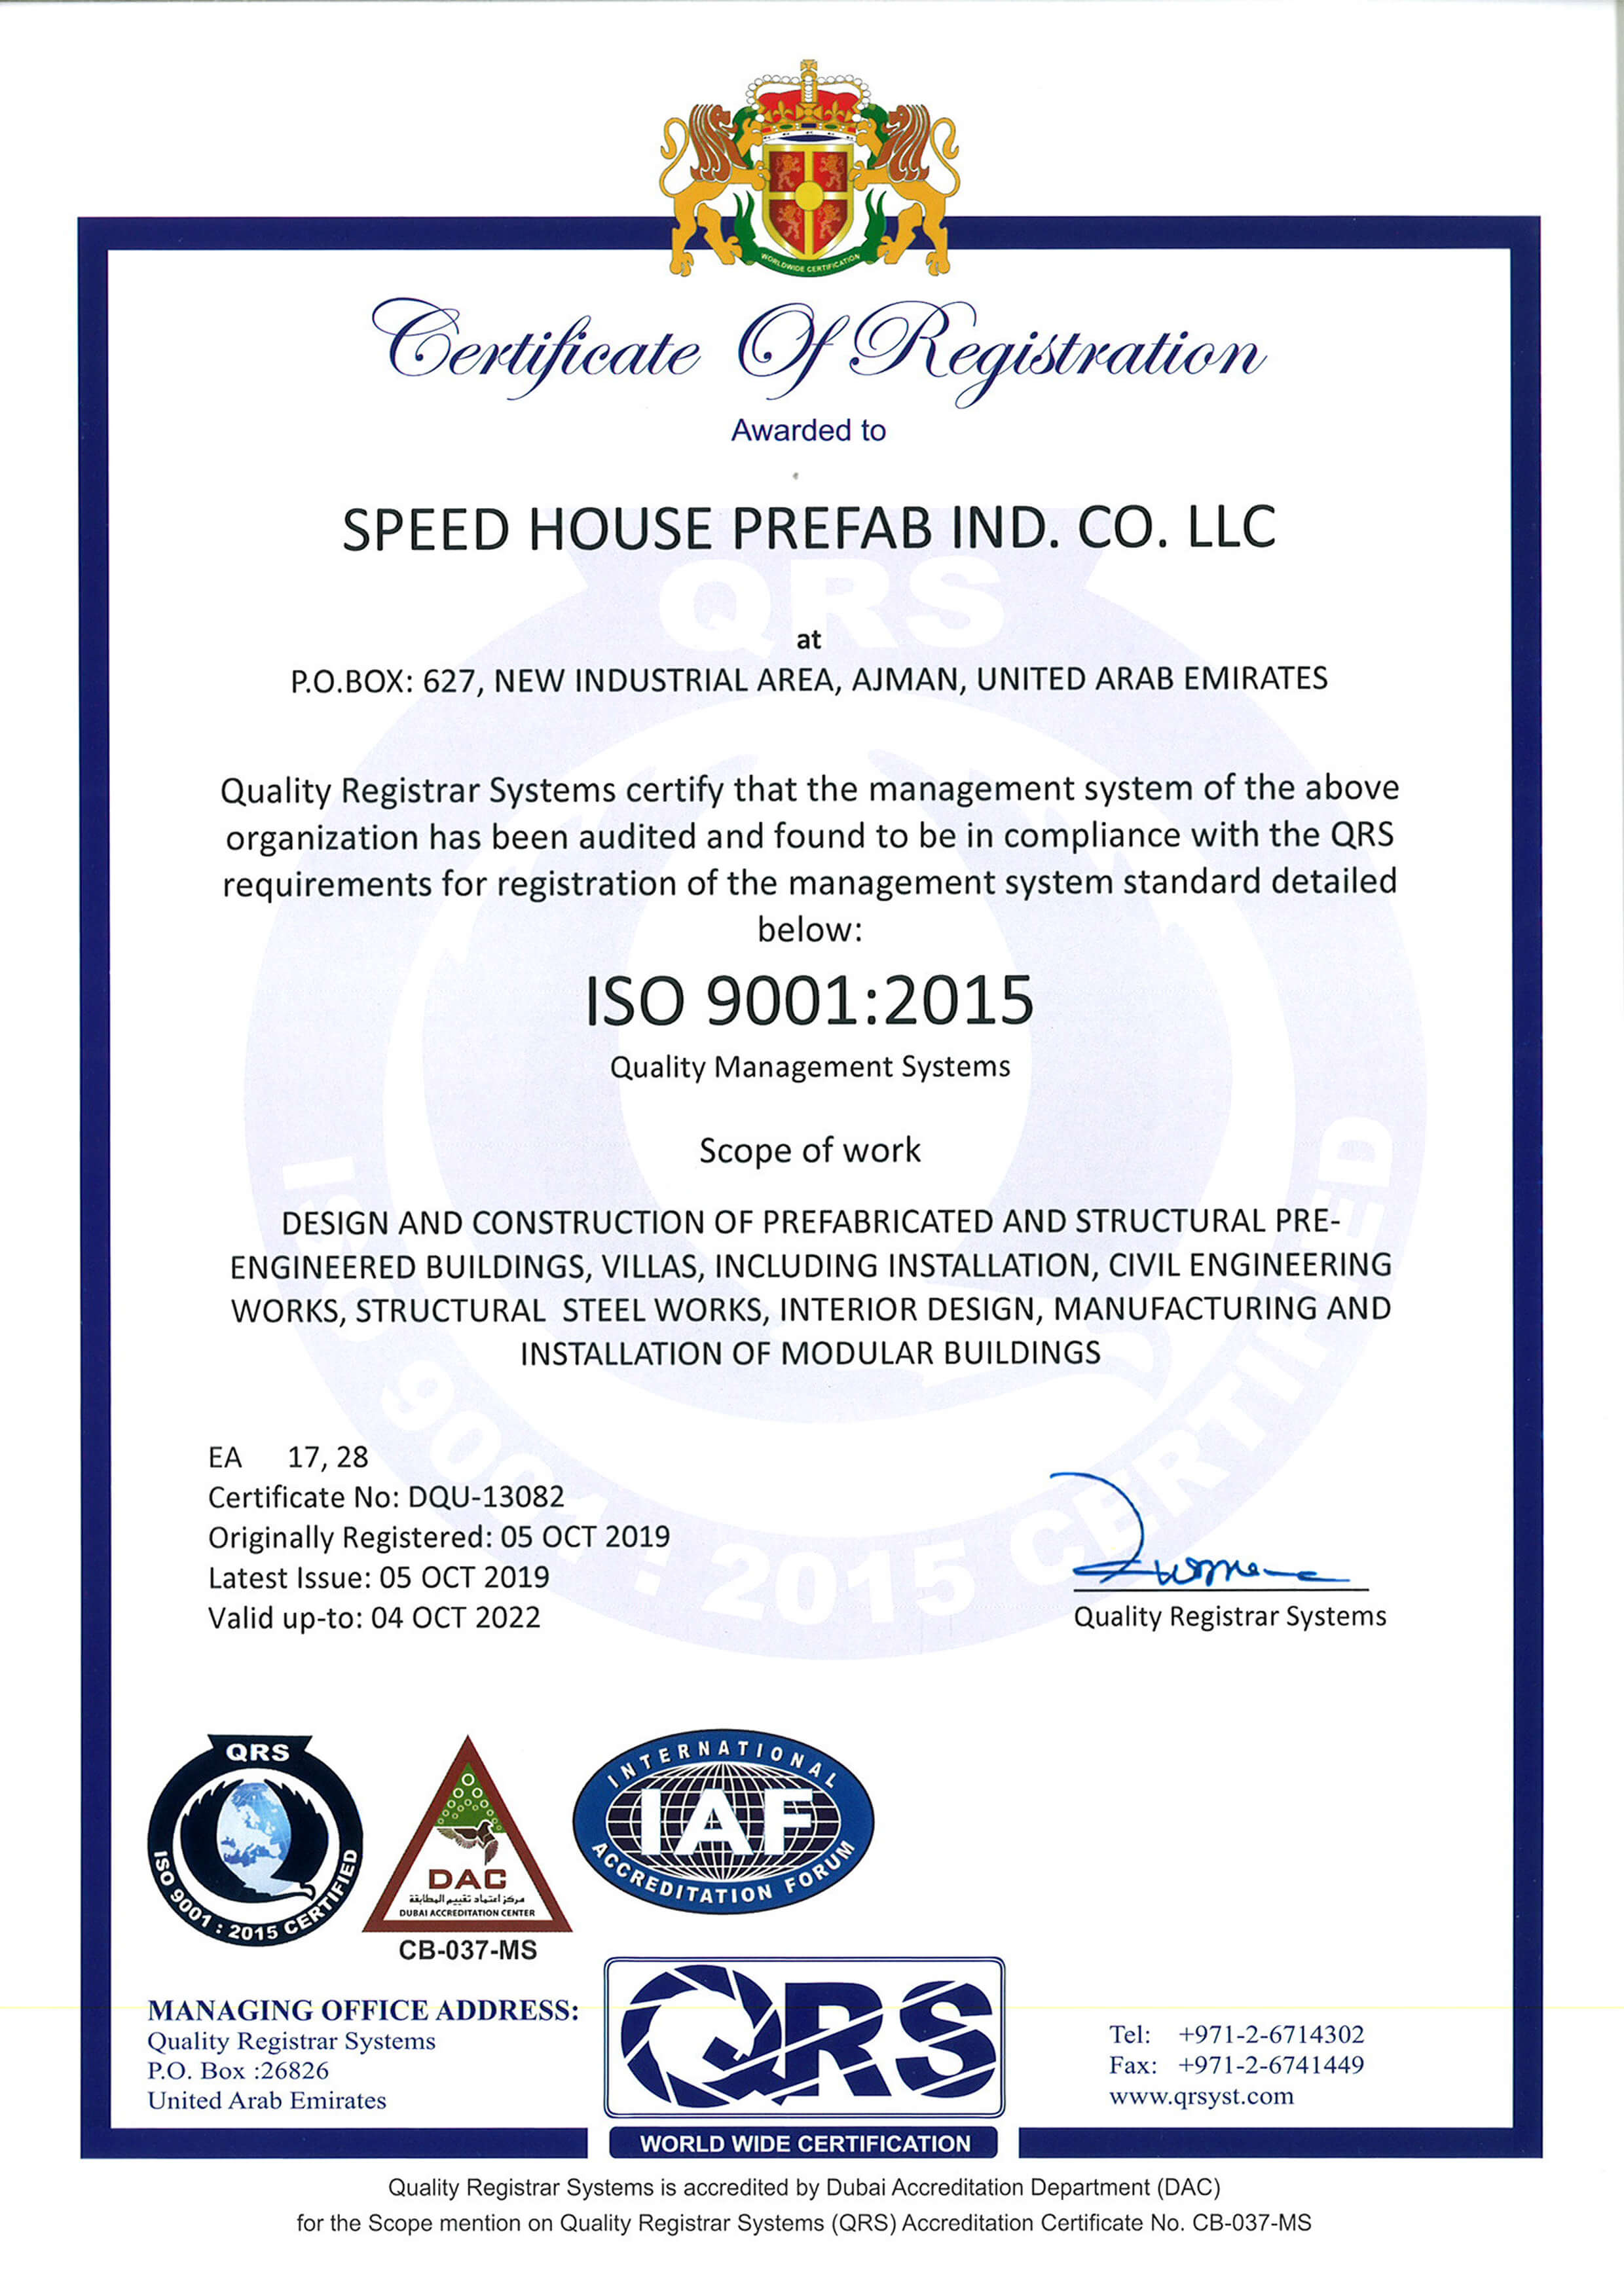 Speed House Group Prefab ISO 9001 Certificate